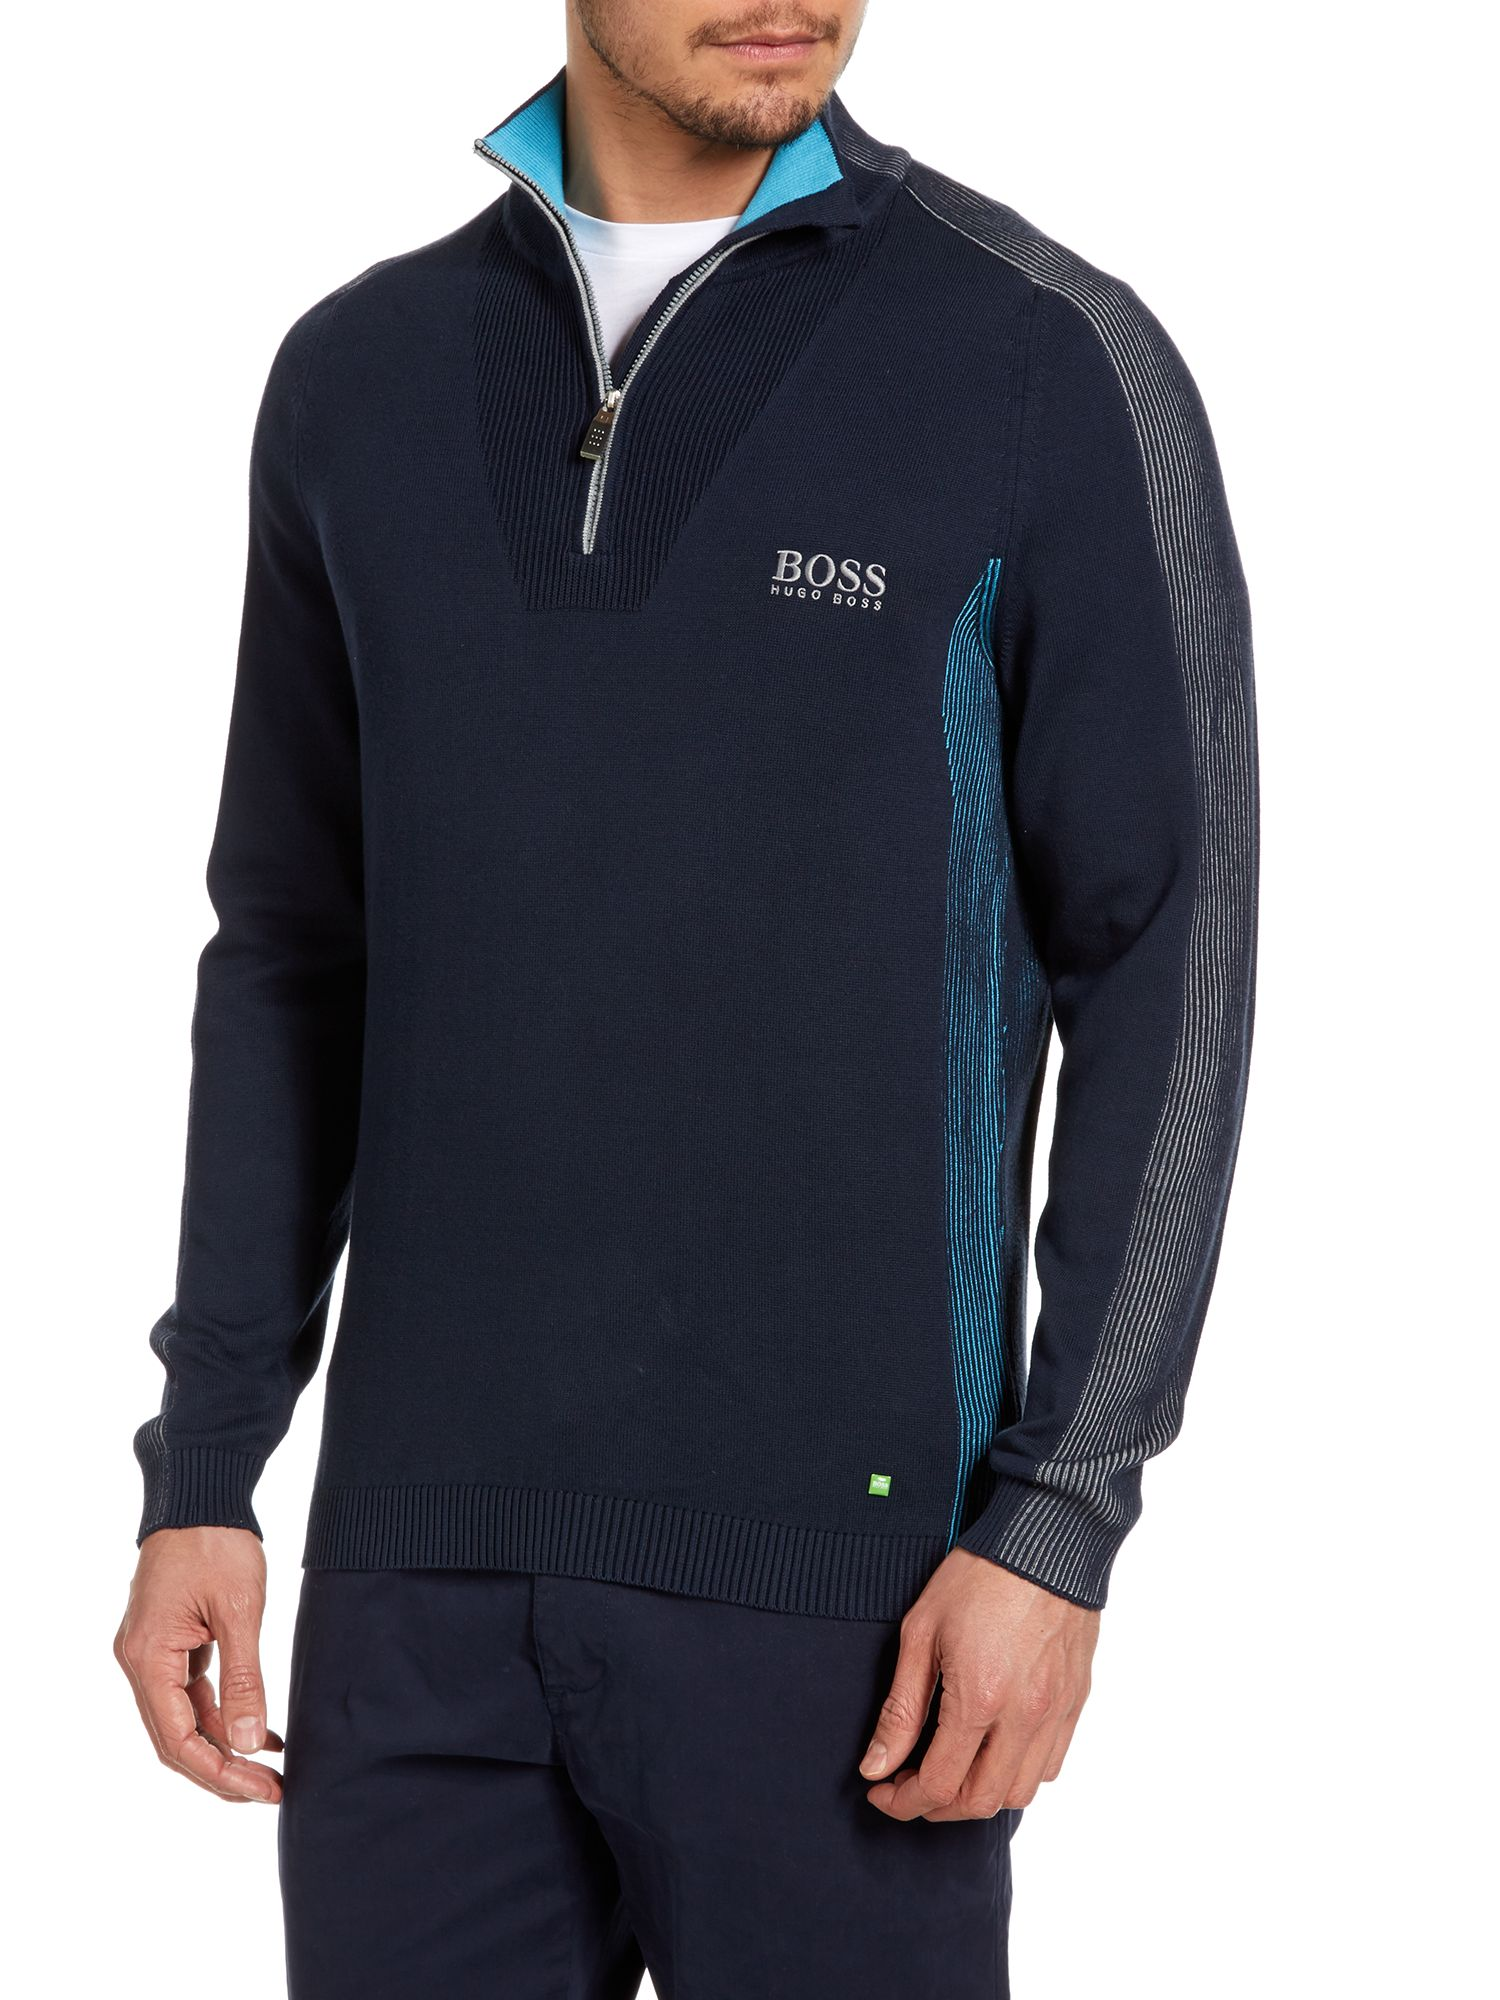 Half zip up golf knitwear